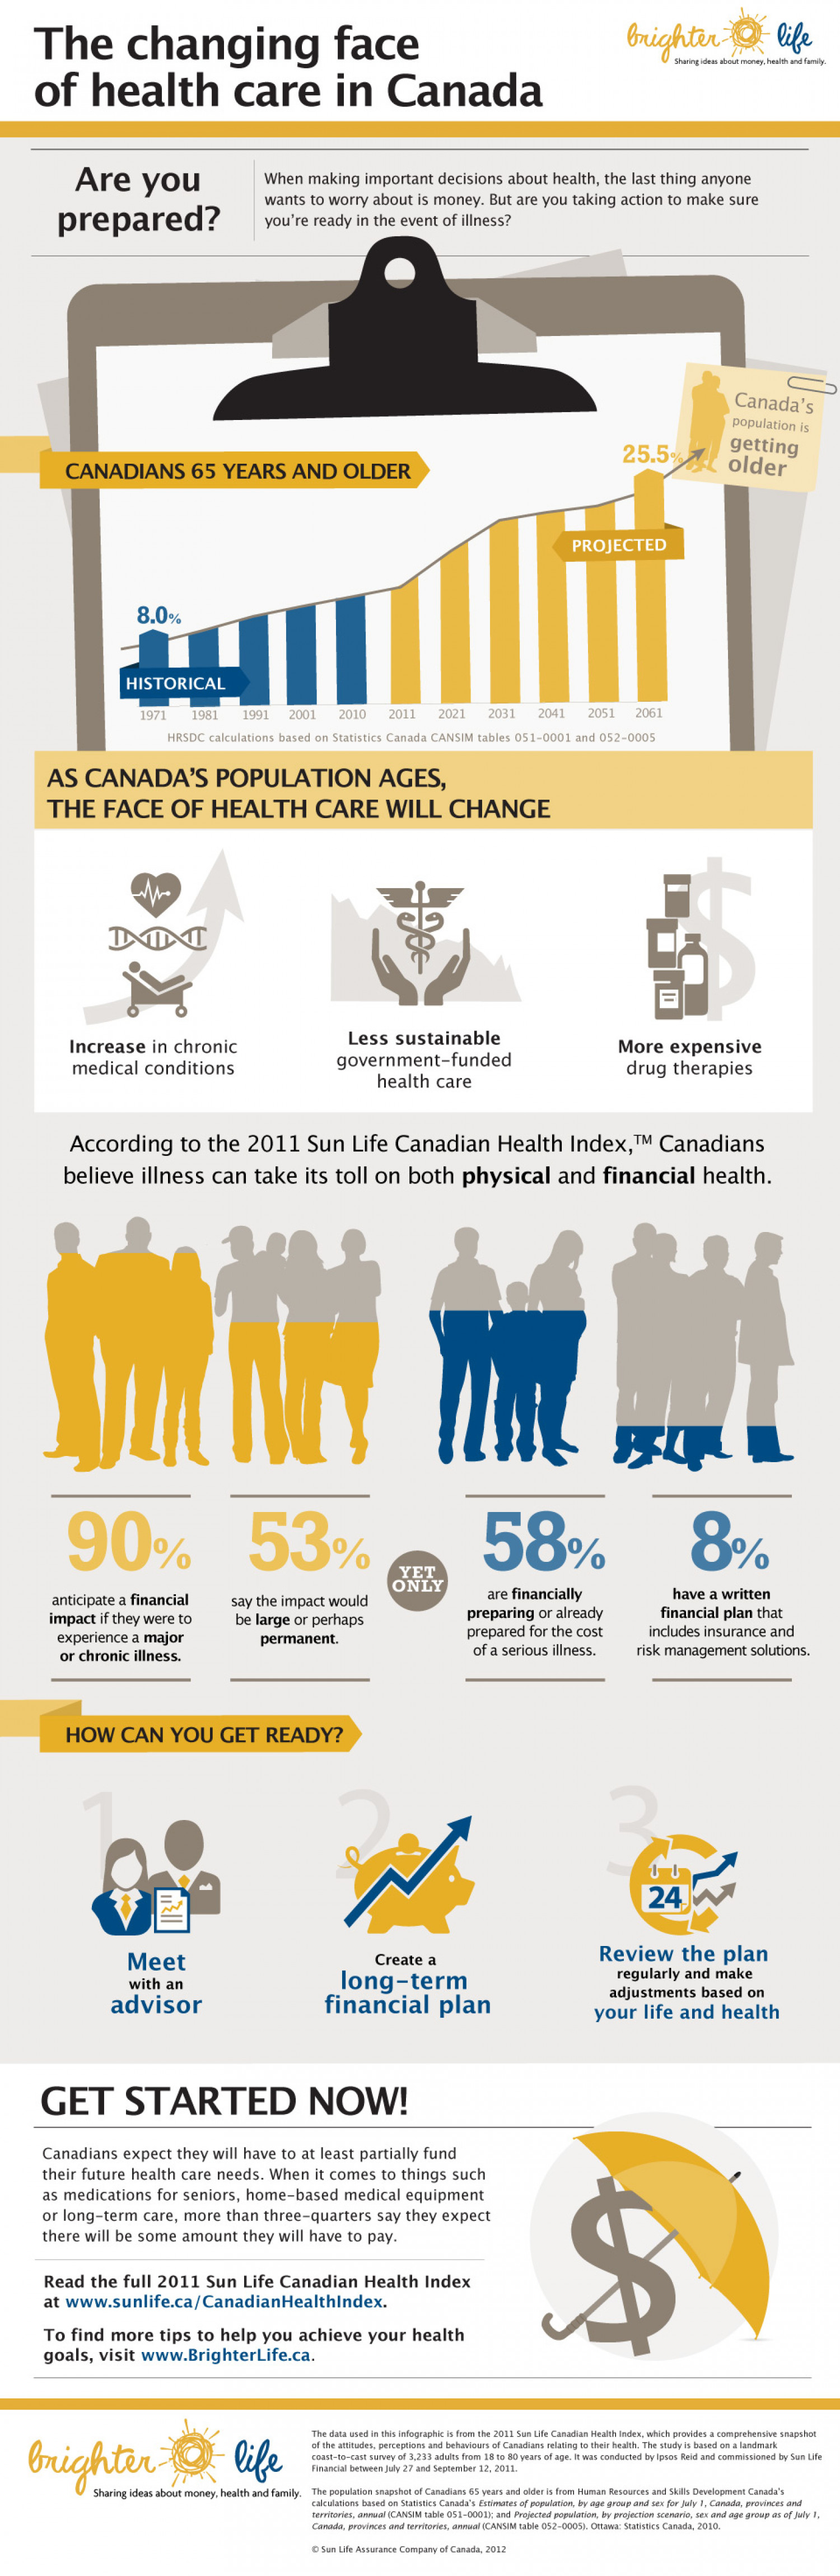 The changing face of health care in Canada Infographic